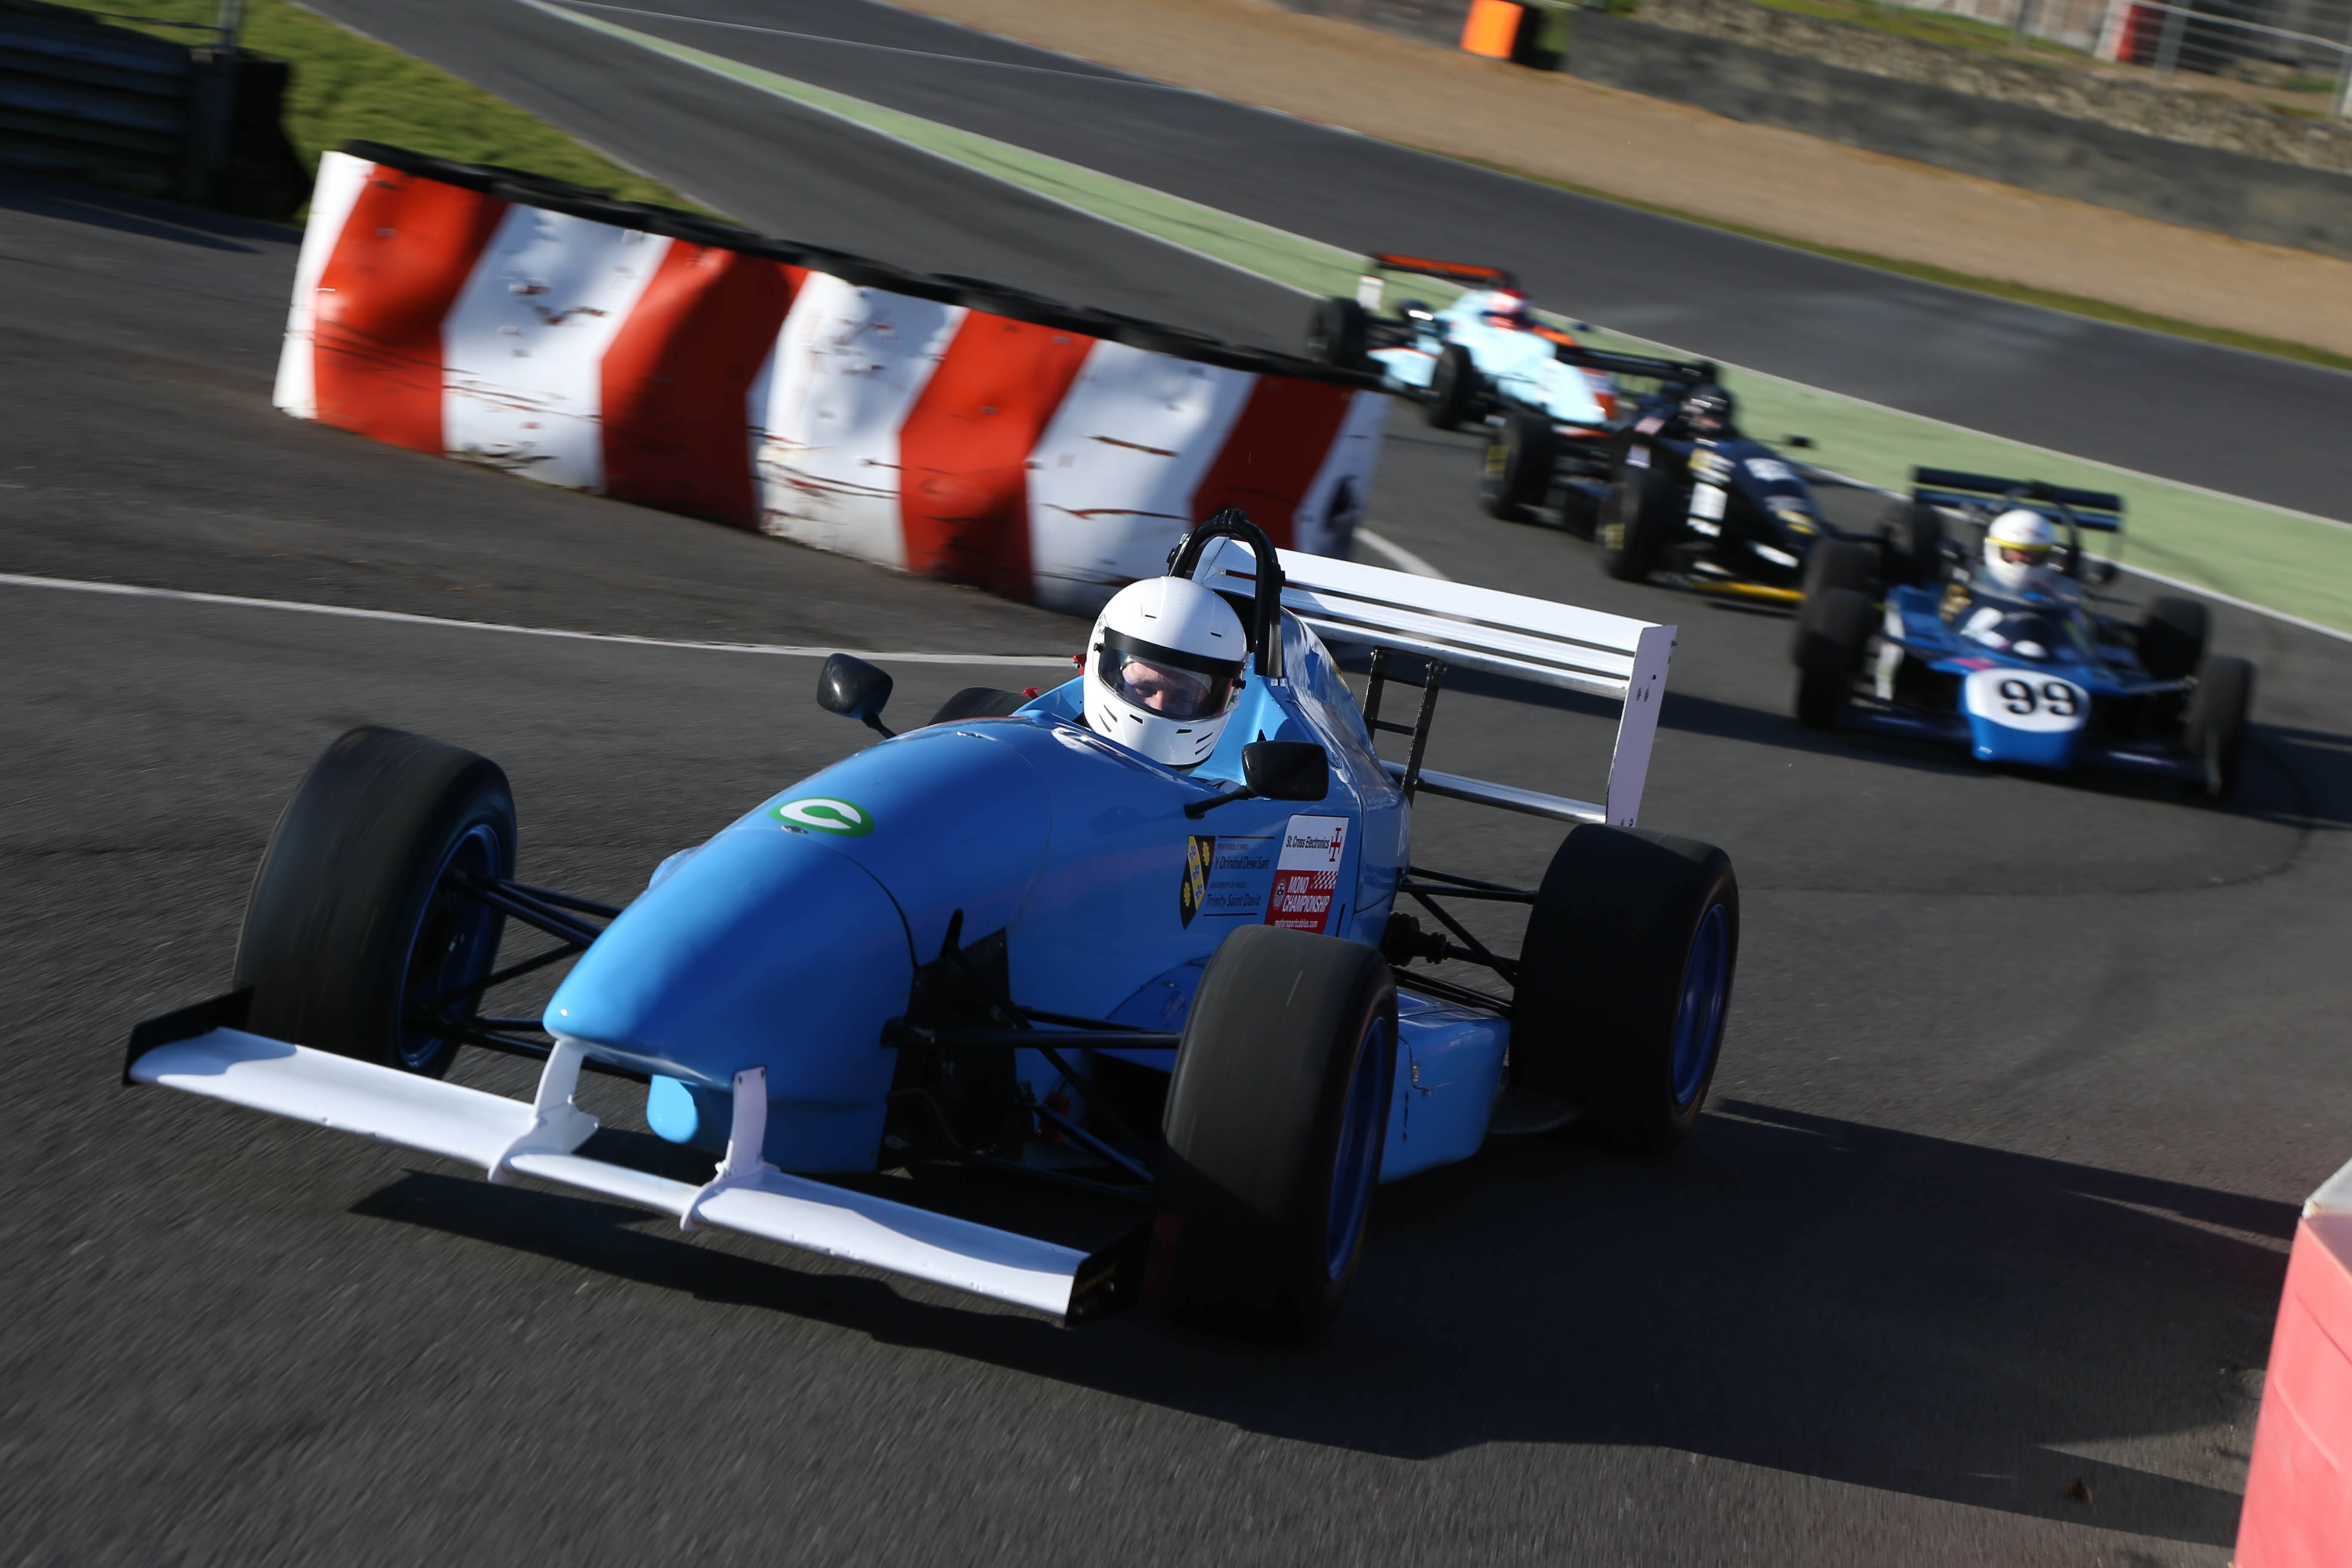 MSVR News - MSVR heads to new-look Donington Park